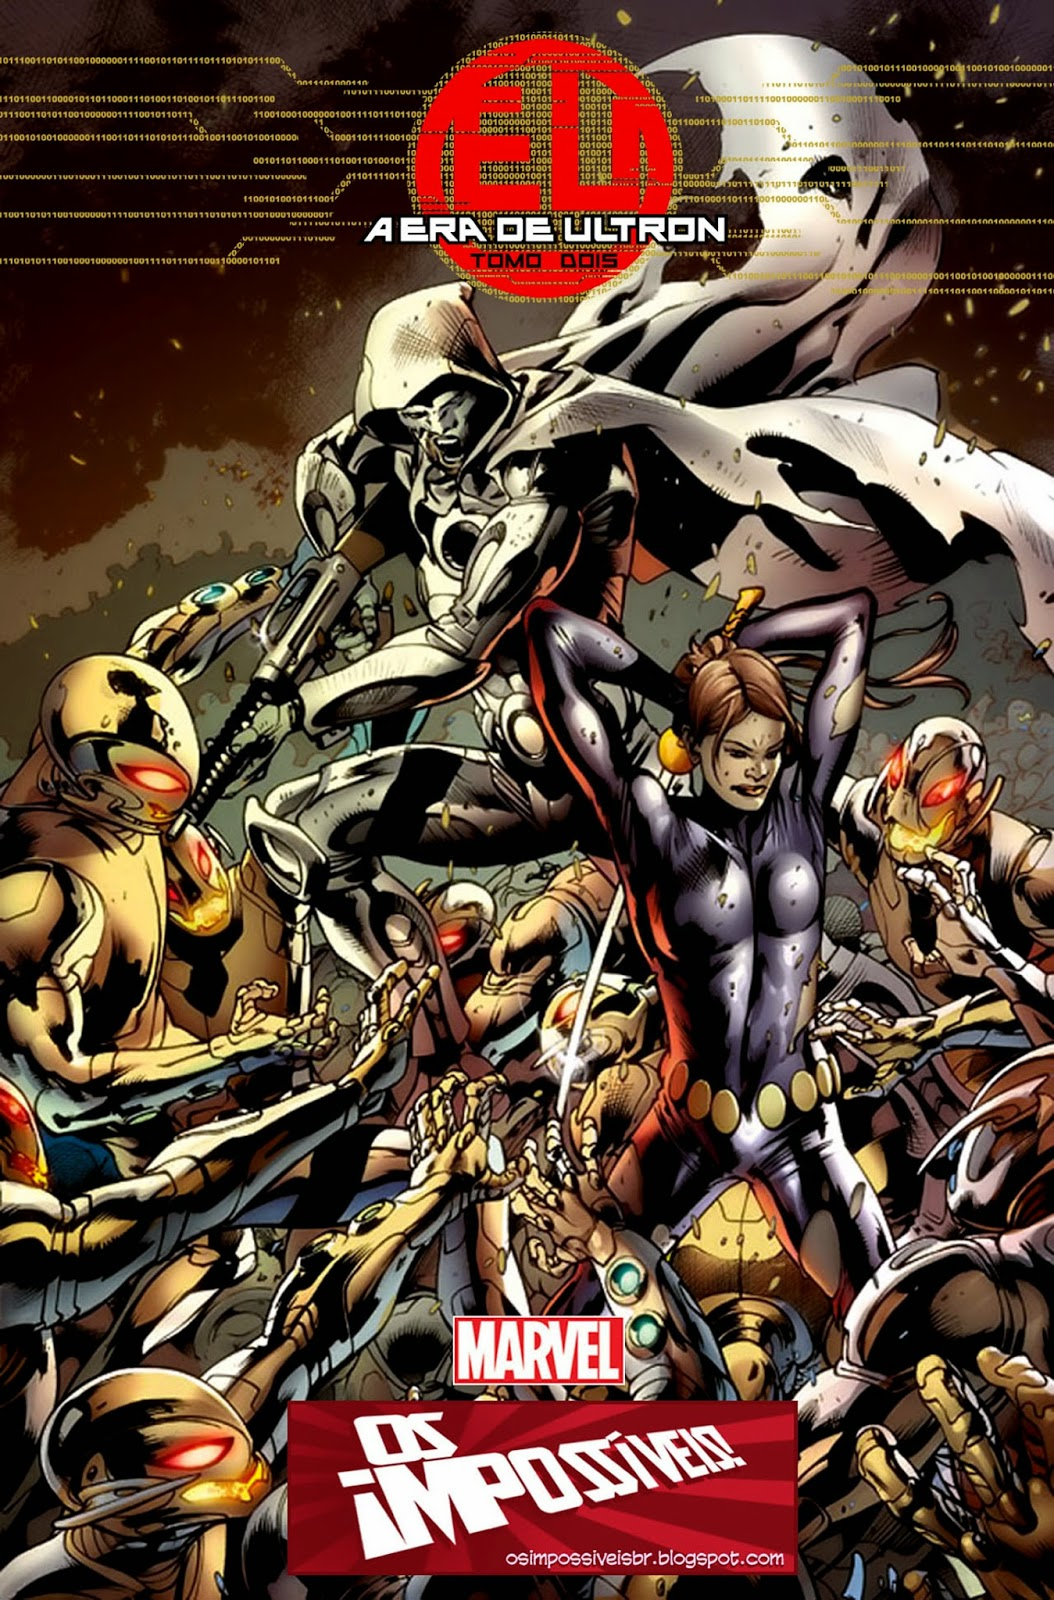 Nova Marvel! A Era de Ultron #2